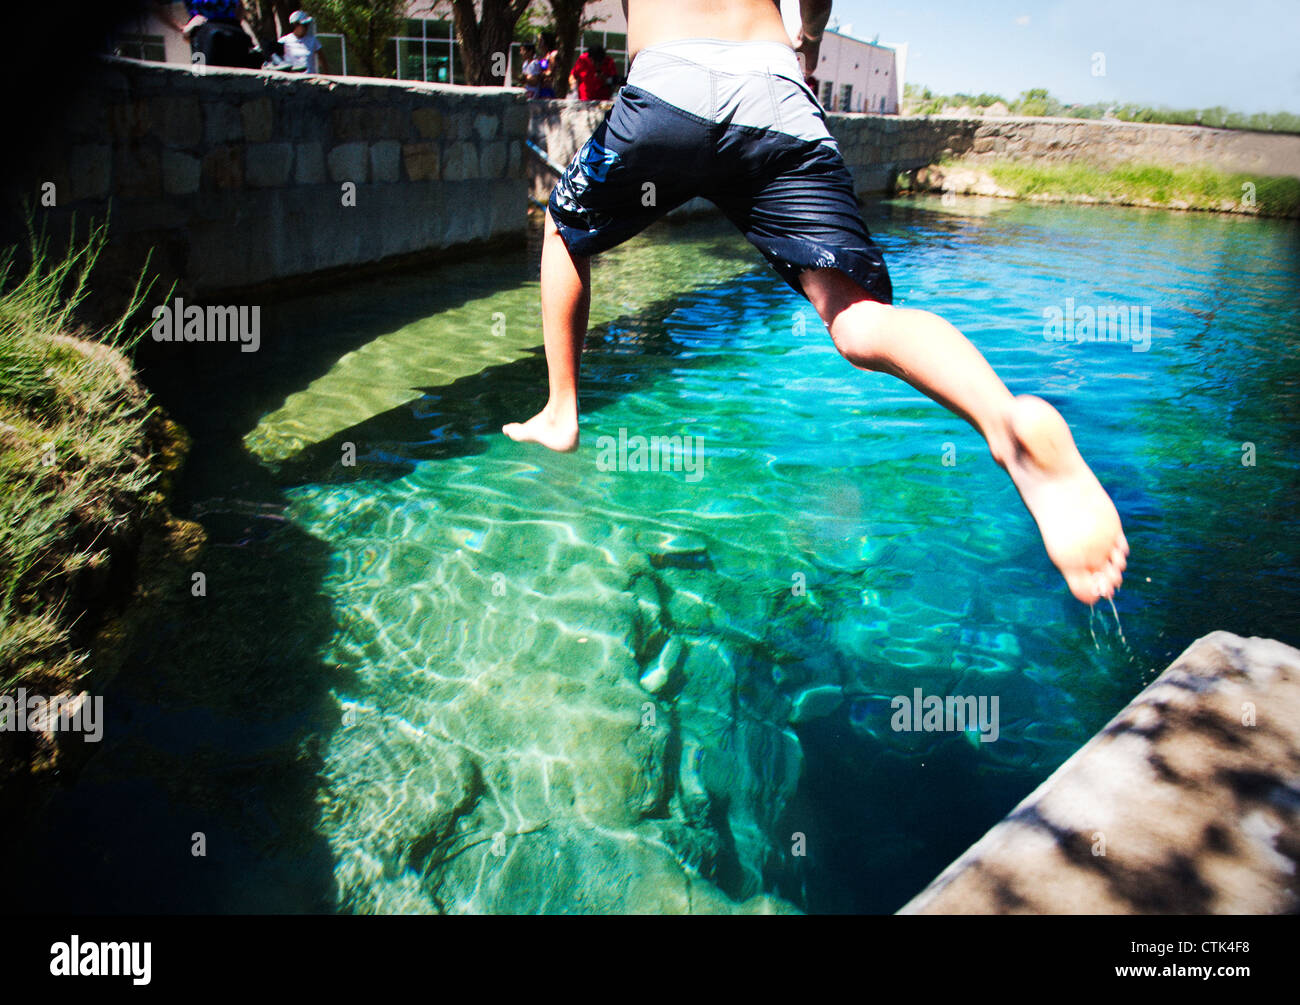 Twelve year old boy jumping into deep blue water at The Blue Hole, Santa Rosa, New Mexico. - Stock Image